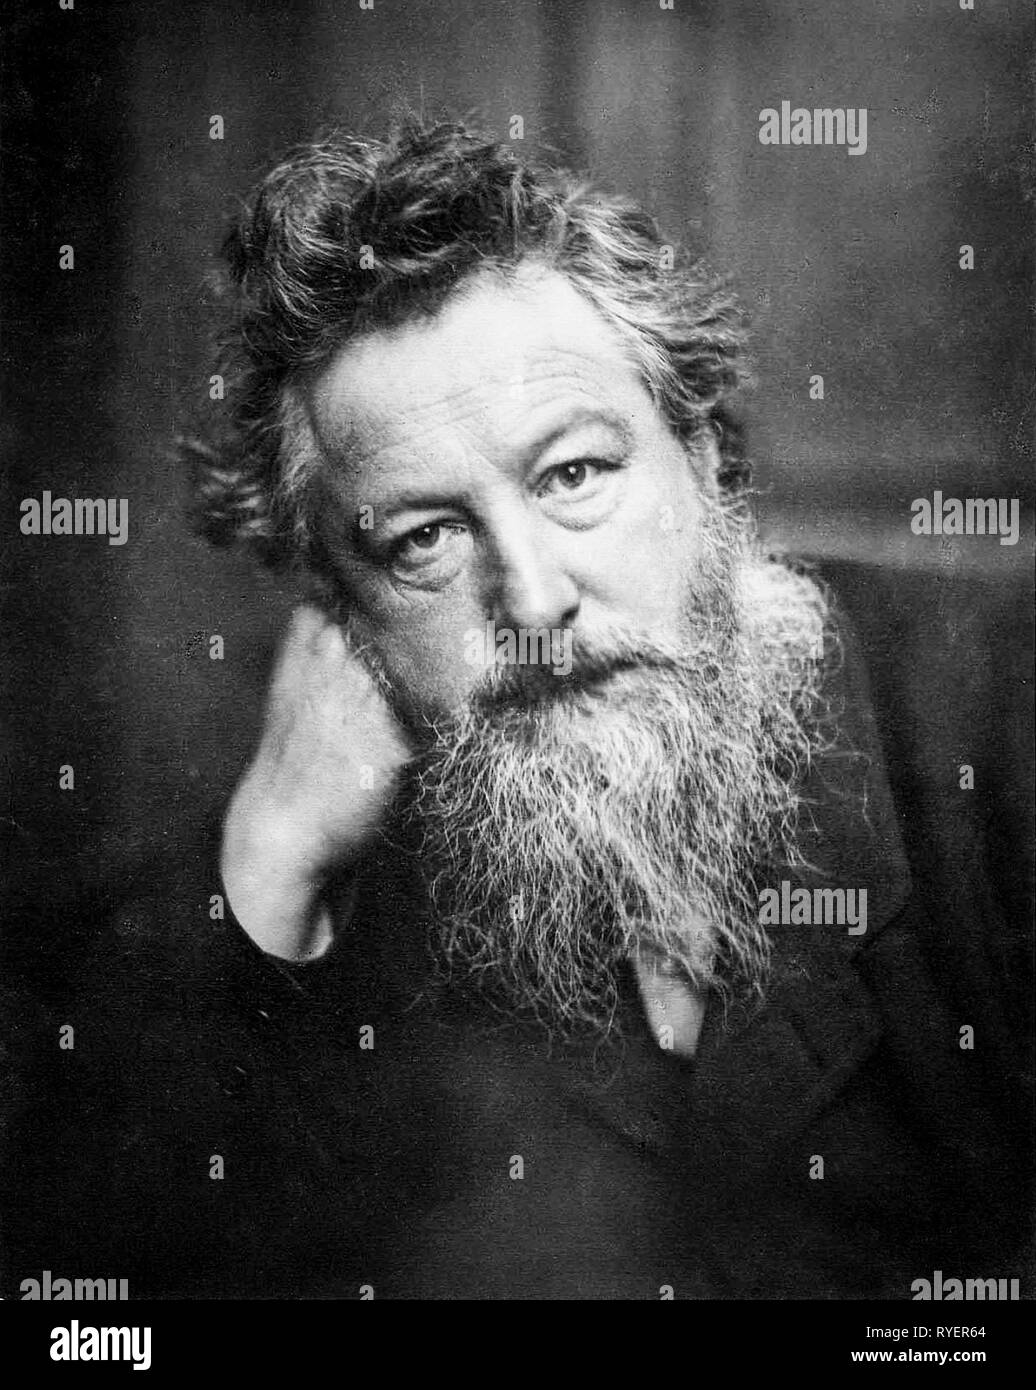 William Morris (1834-1896), portrait photograph aged 53 by Frederick Holyer, 1887-1888 - Stock Image